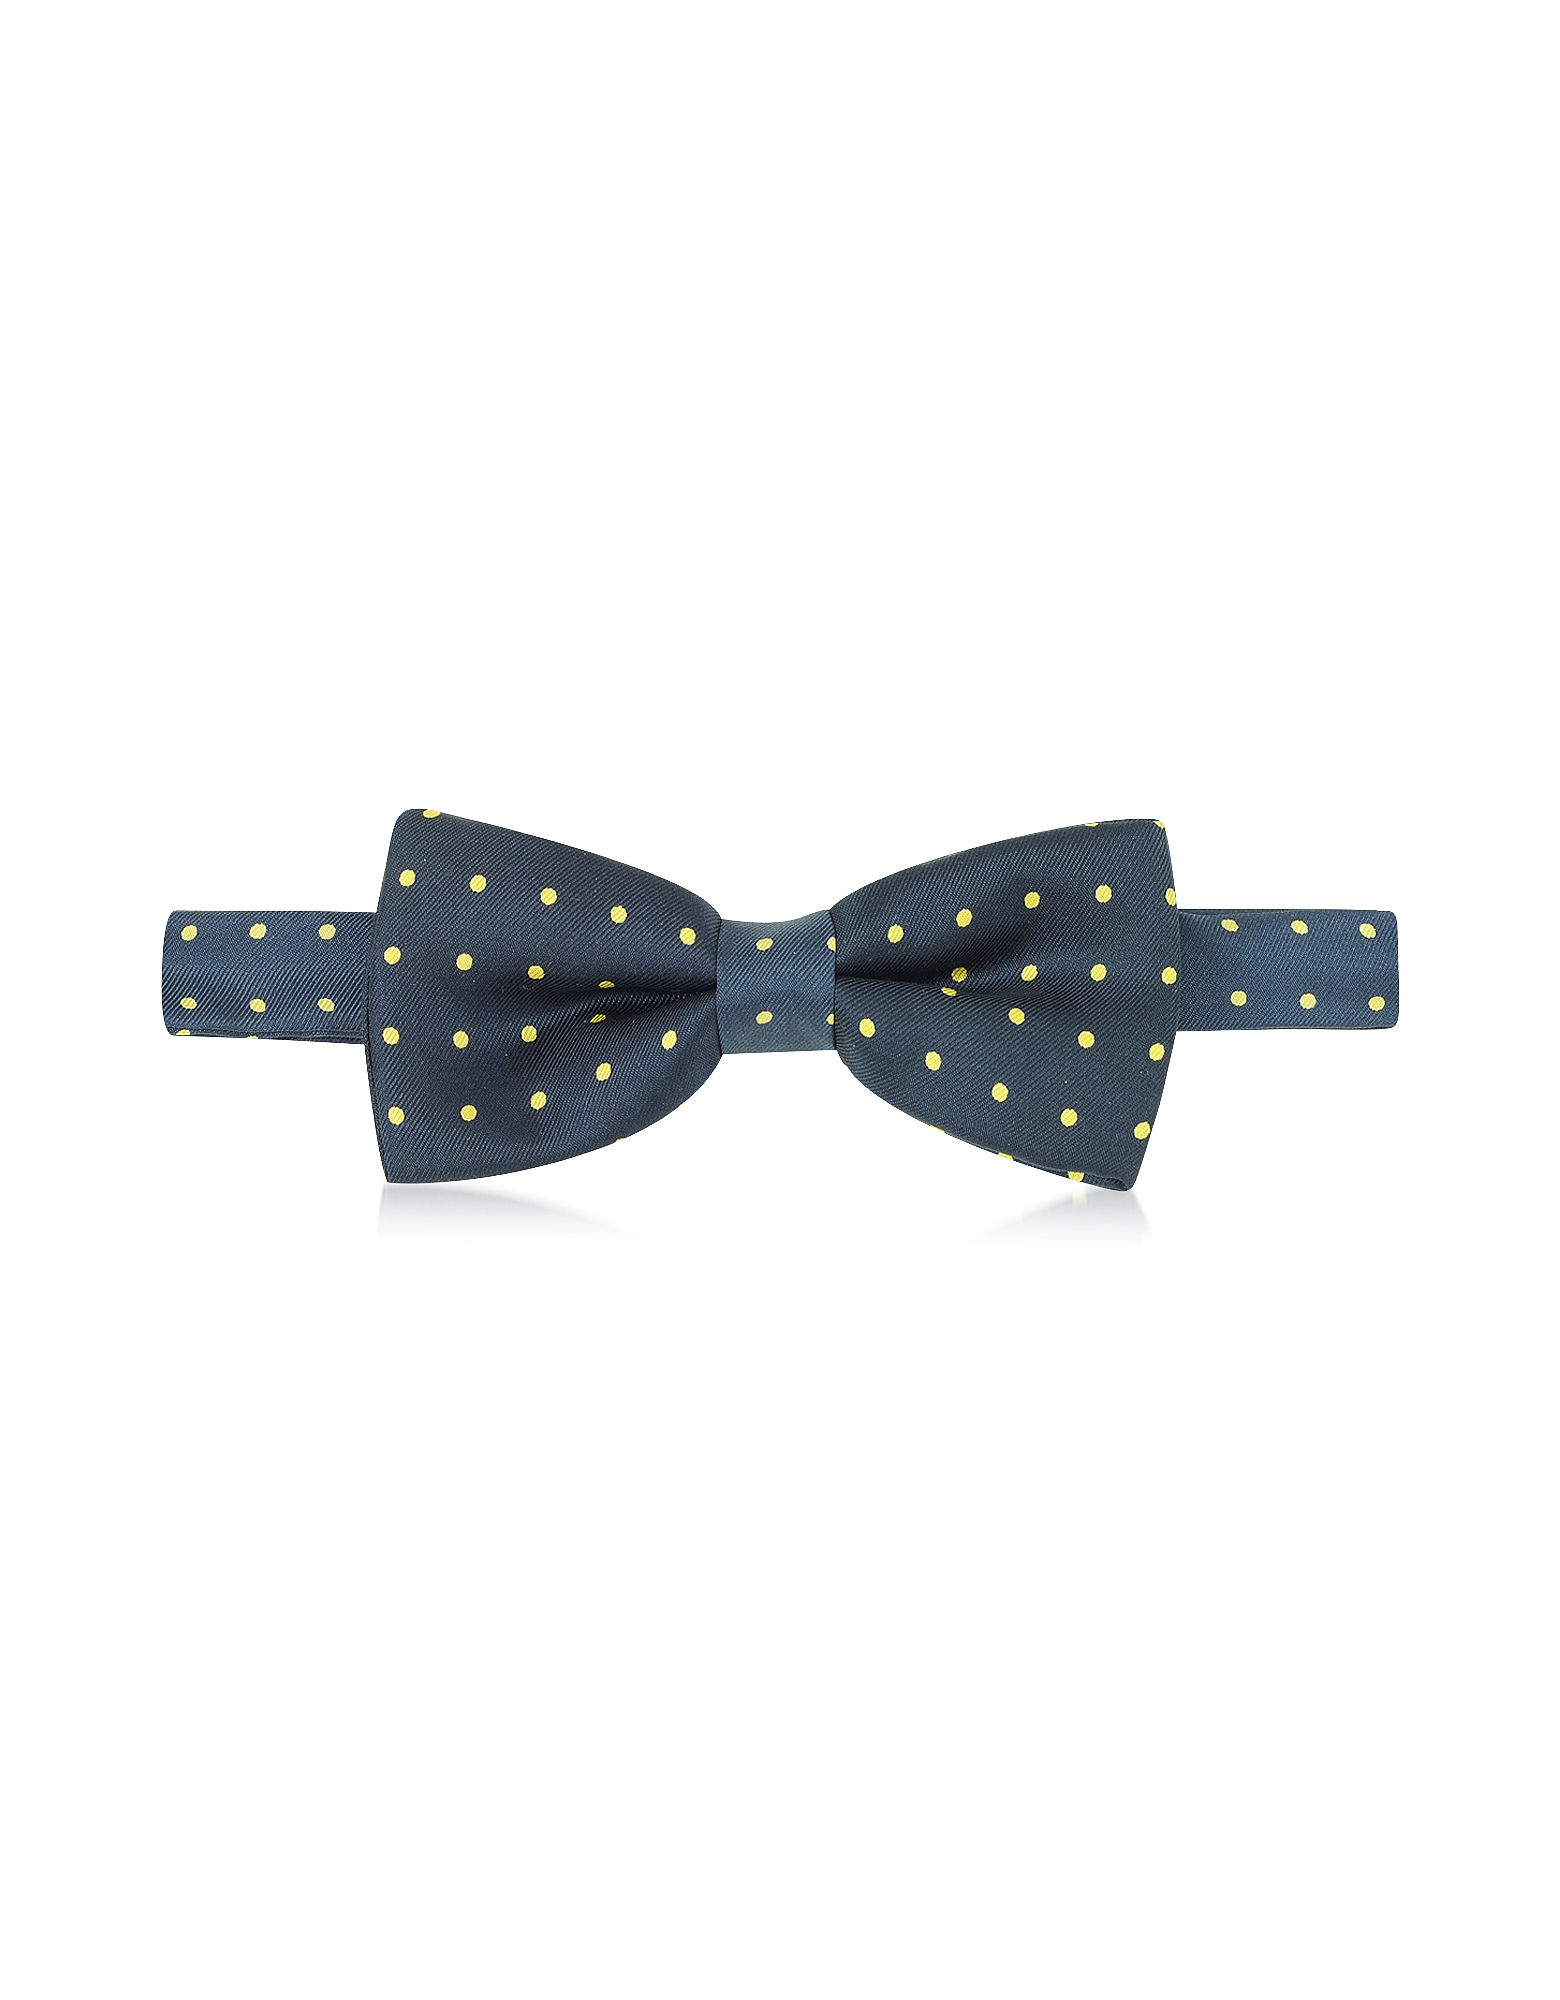 Forzieri Bowties and Cummerbunds, Polkadot Pre-tied Bowtie